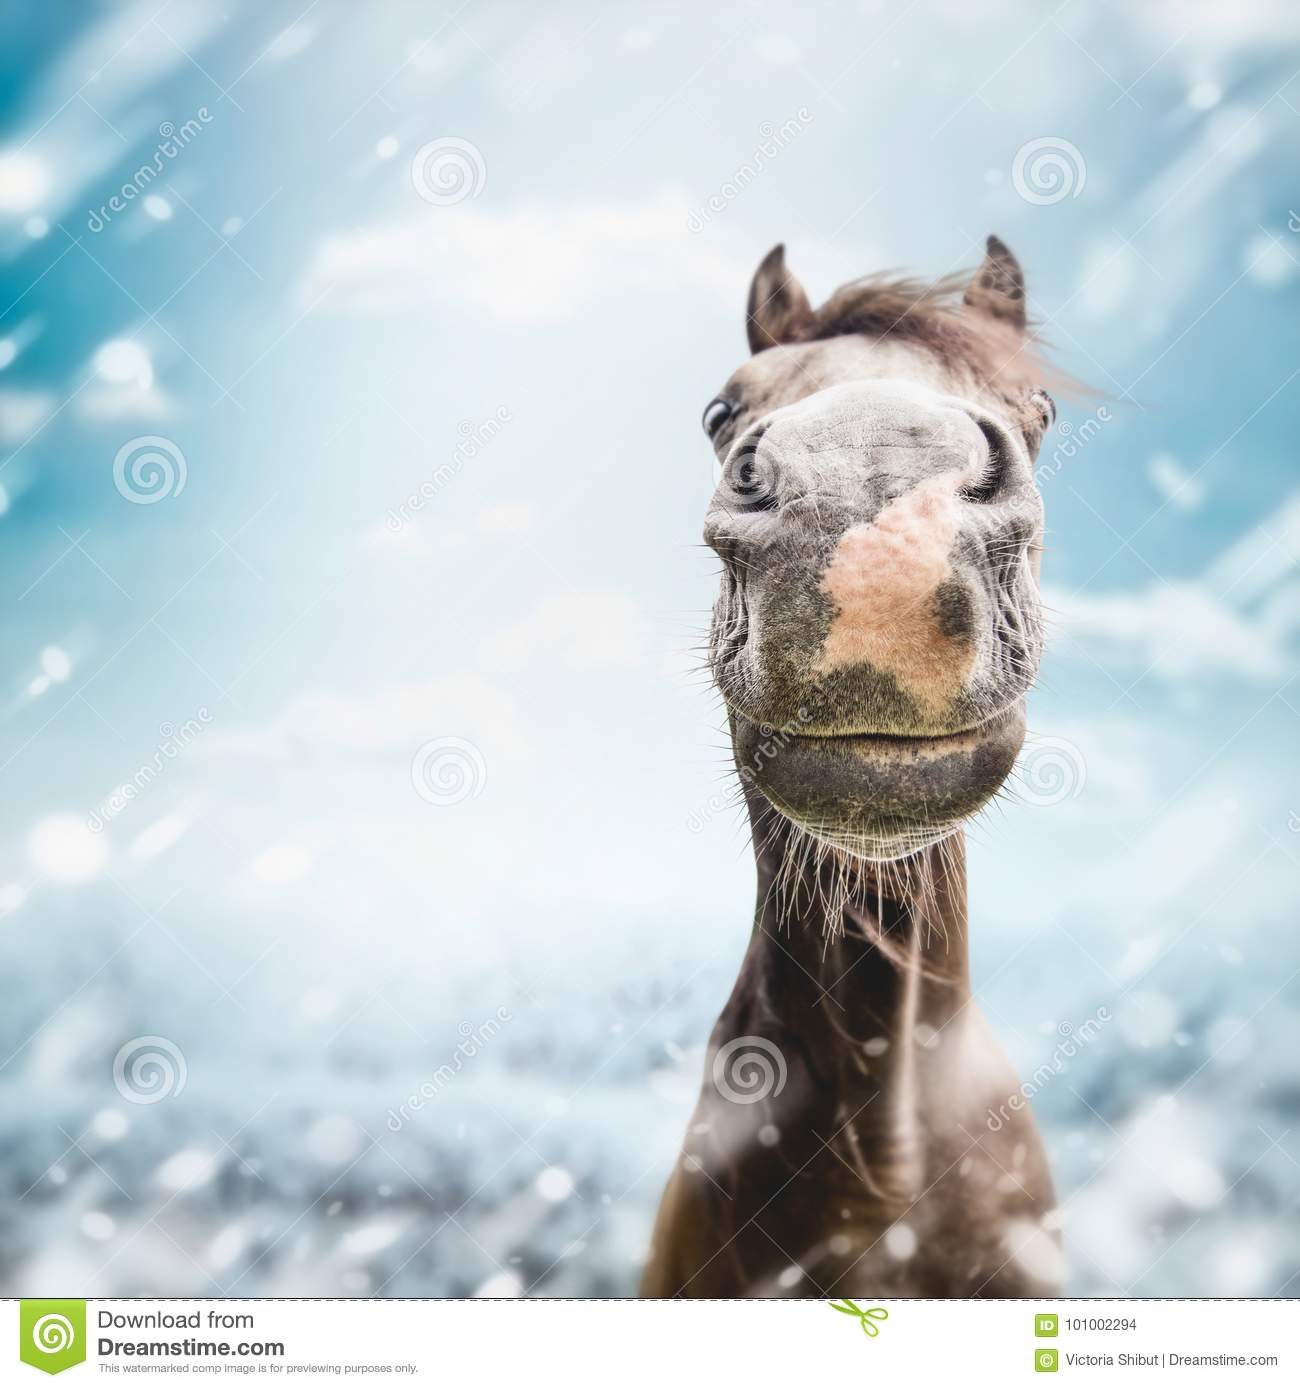 11 936 Funny Horse Photos Free Royalty Free Stock Photos From Dreamstime